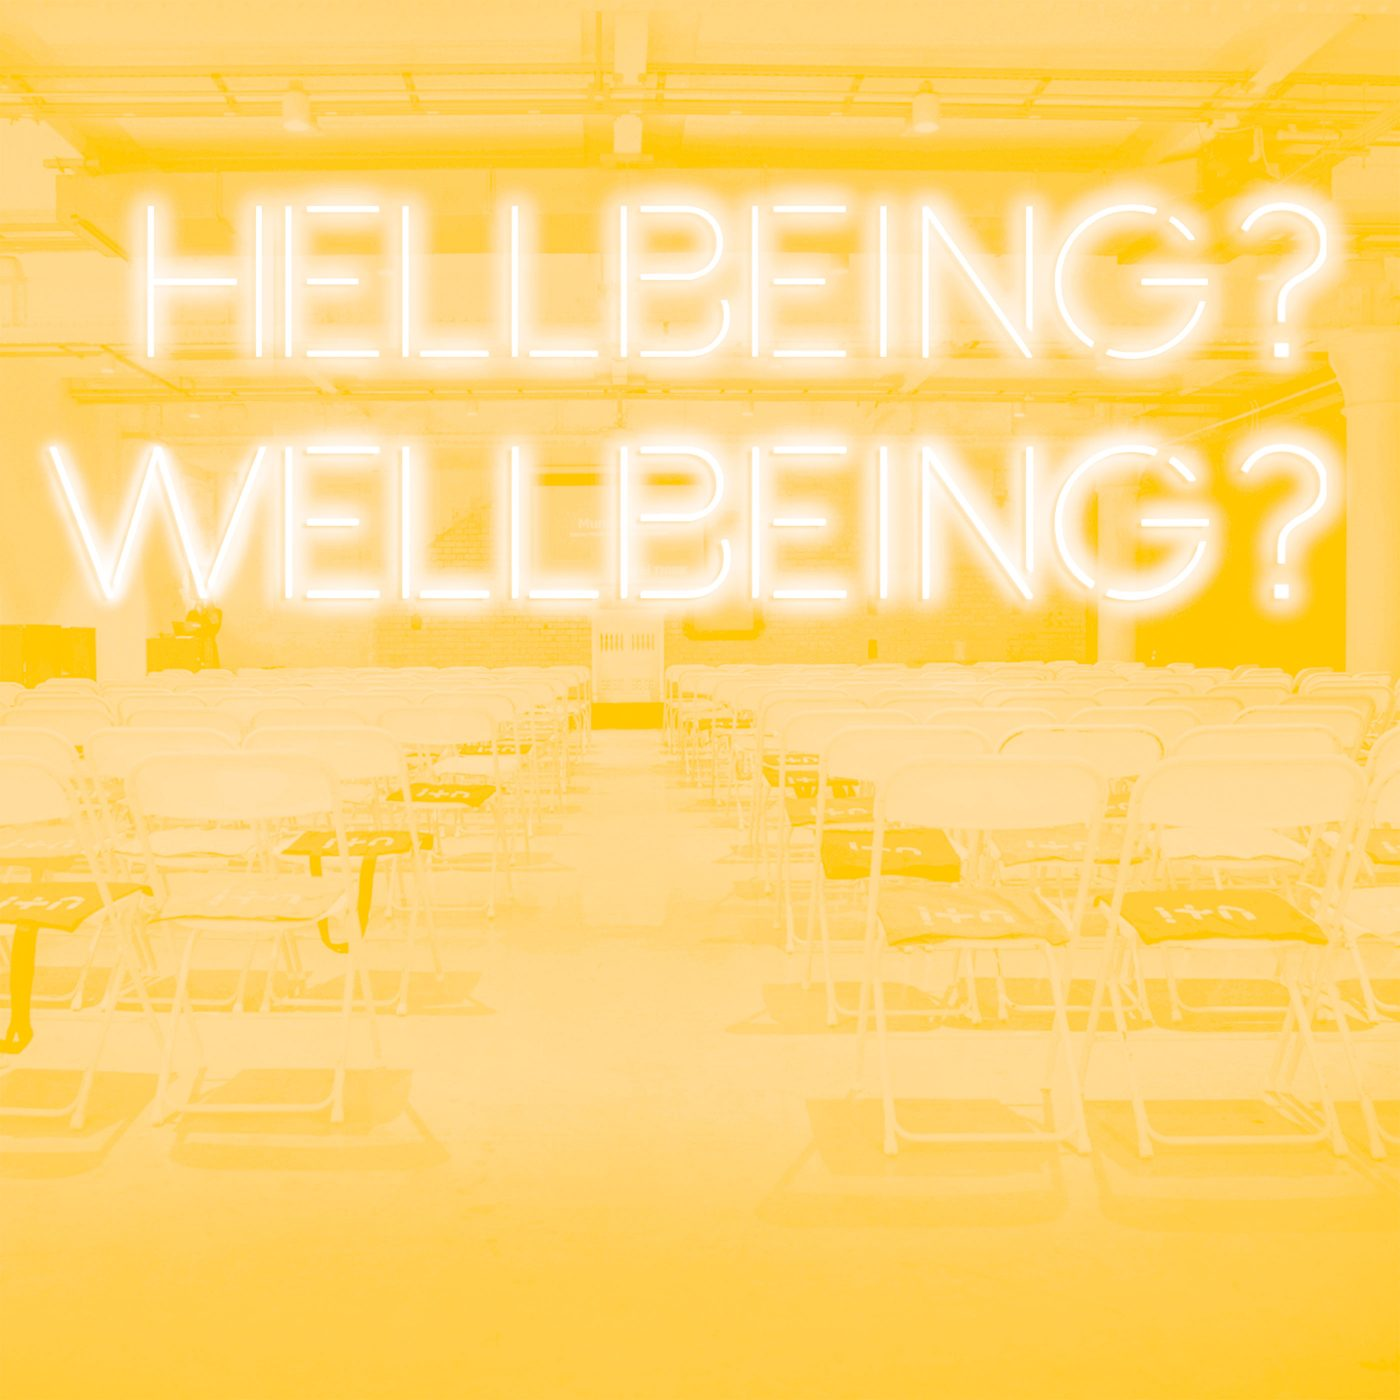 160915 Hellbeing Wellbeing Web Research 2800